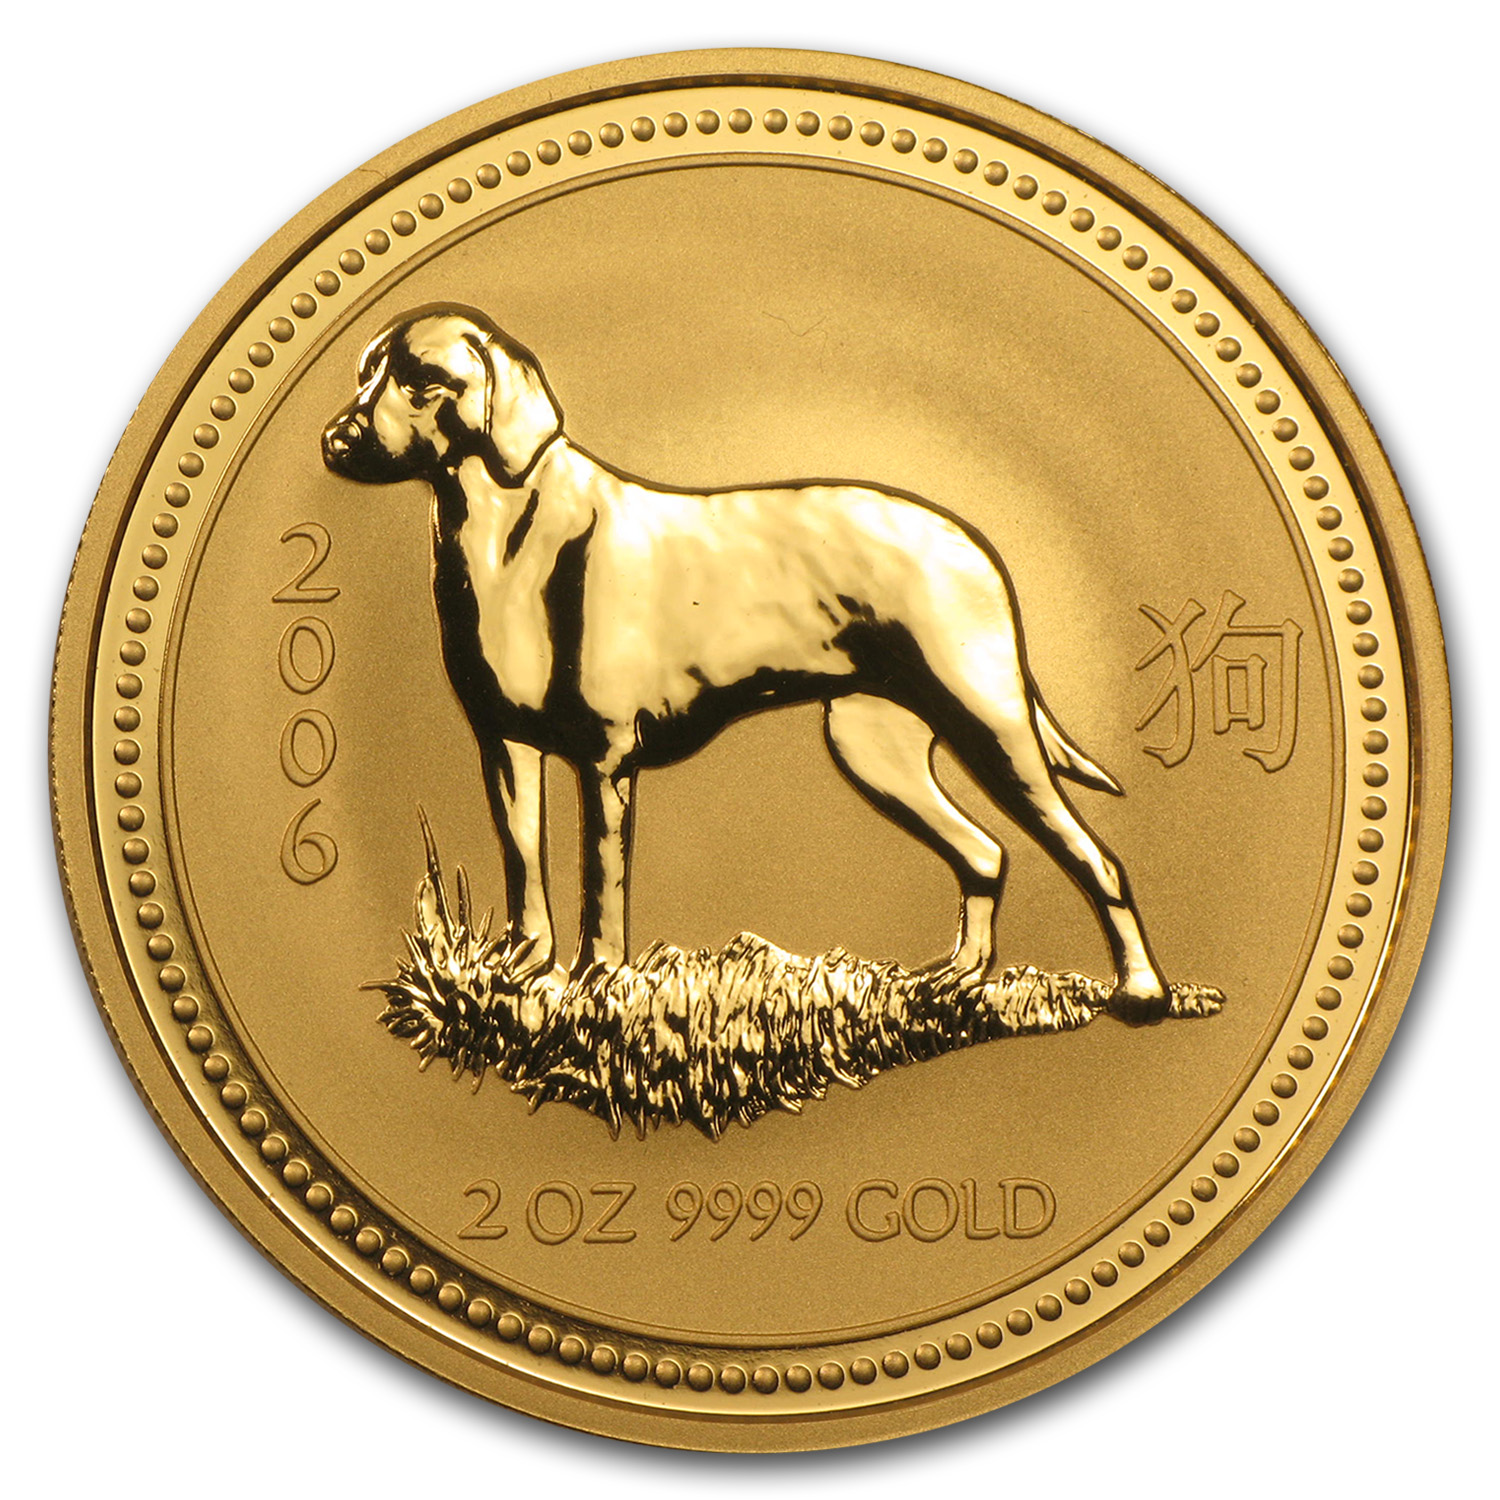 2006 2 oz Gold Year of the Dog Lunar Coin (Series I)